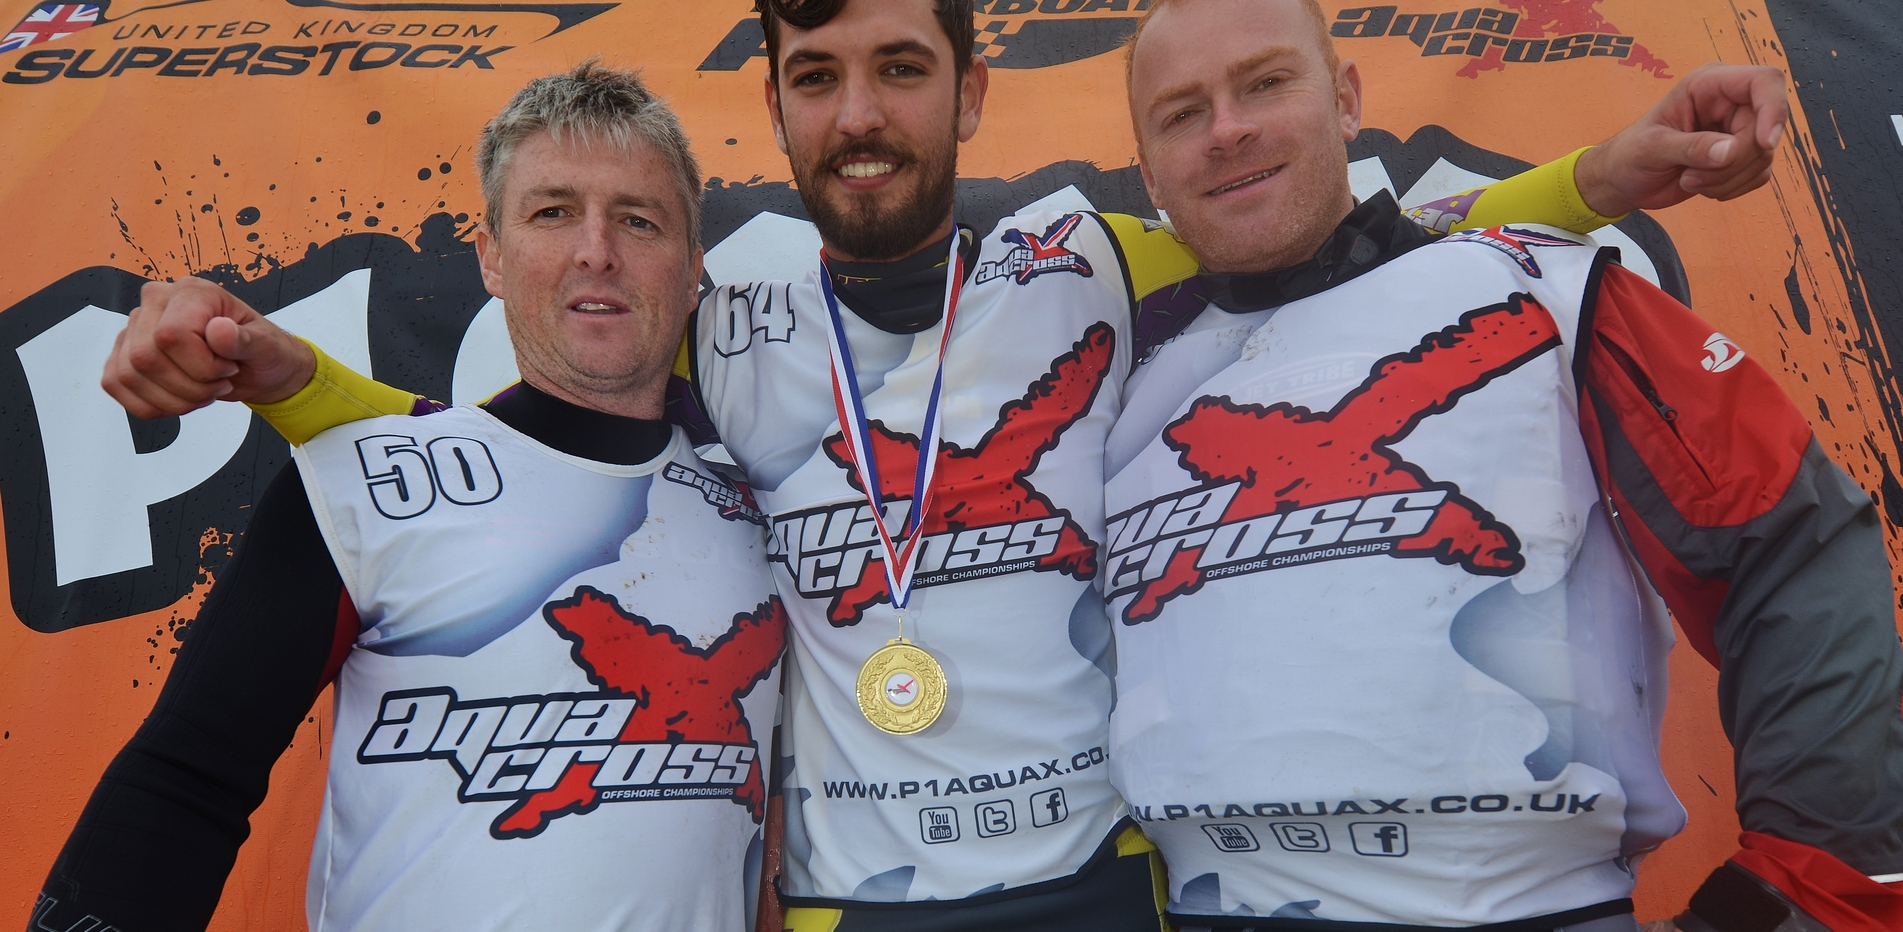 Final Podium of the year - L-R Leach, Harvey and Batte